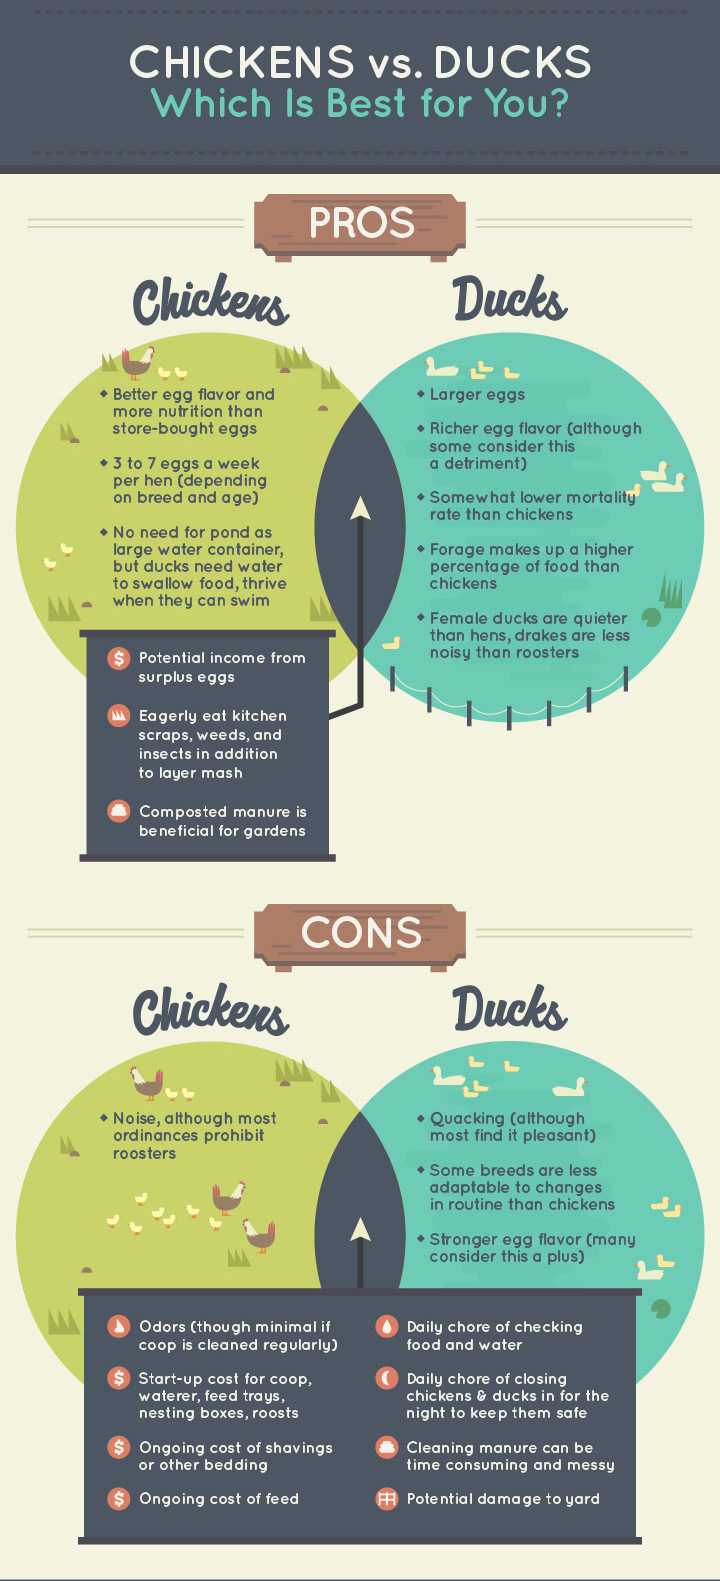 Chickens vs. Ducks: Which Is Better For You?